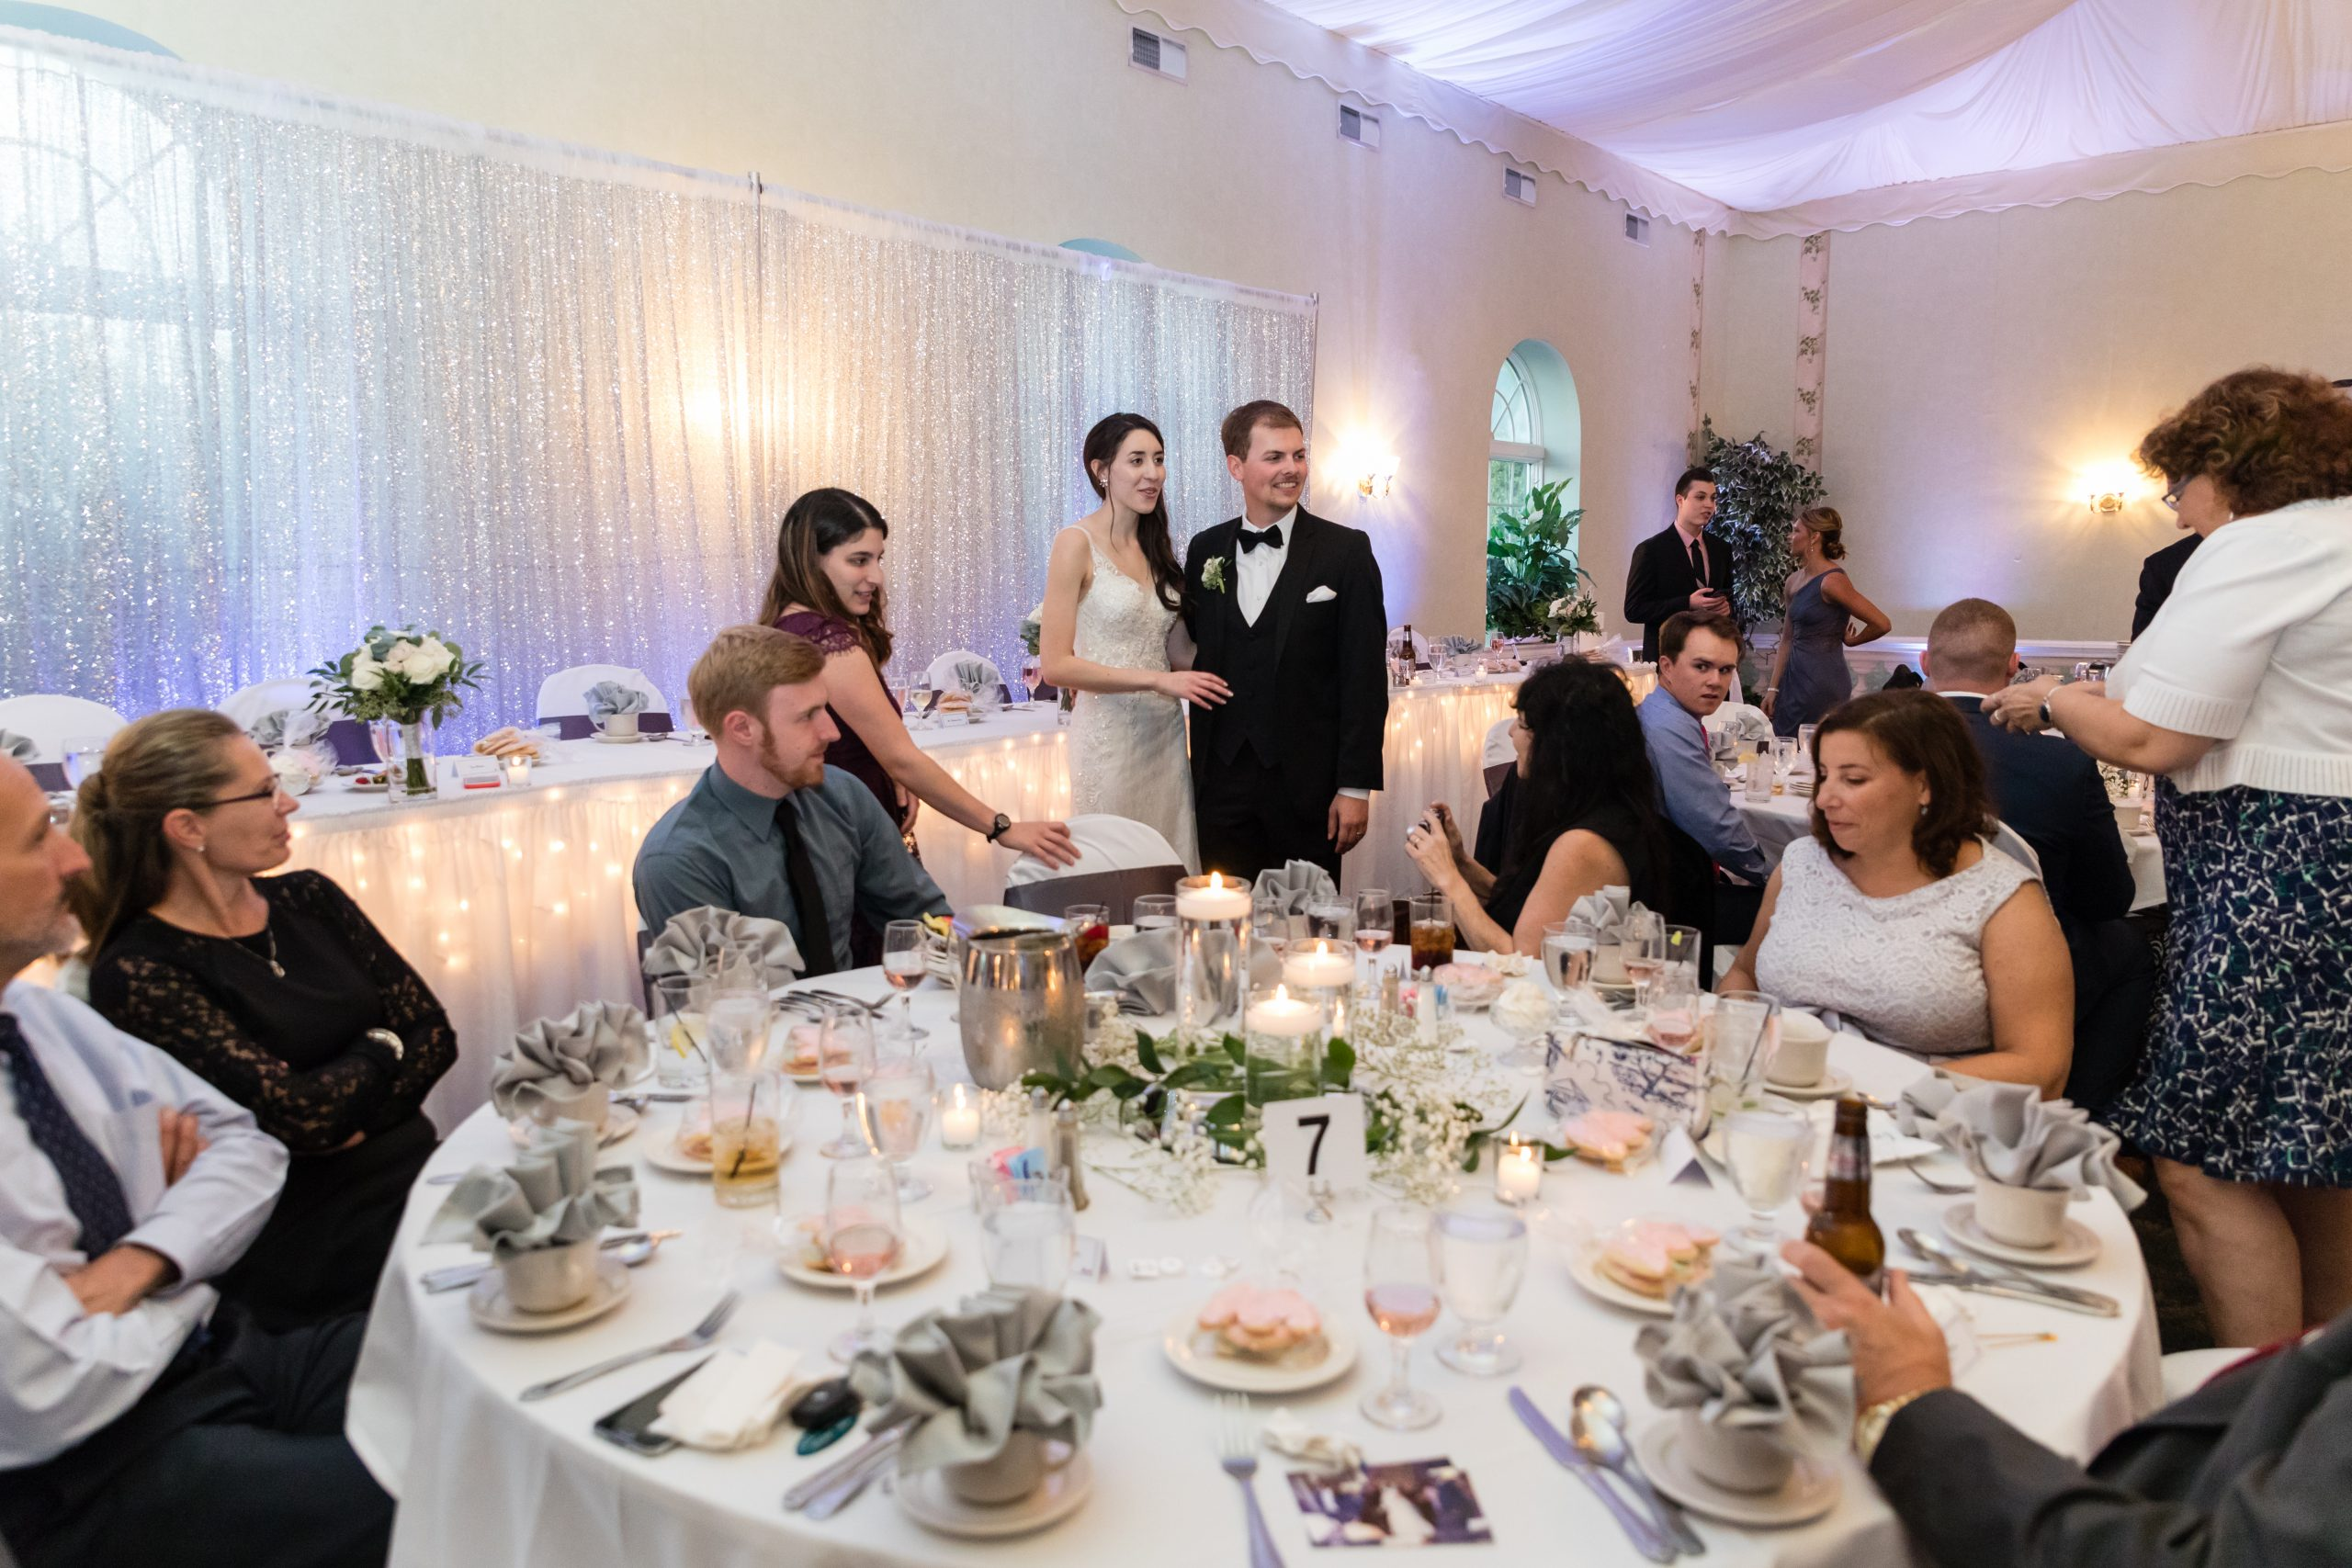 Burns Wedding at Classics V, Amherst NY, by Fallesen Photography